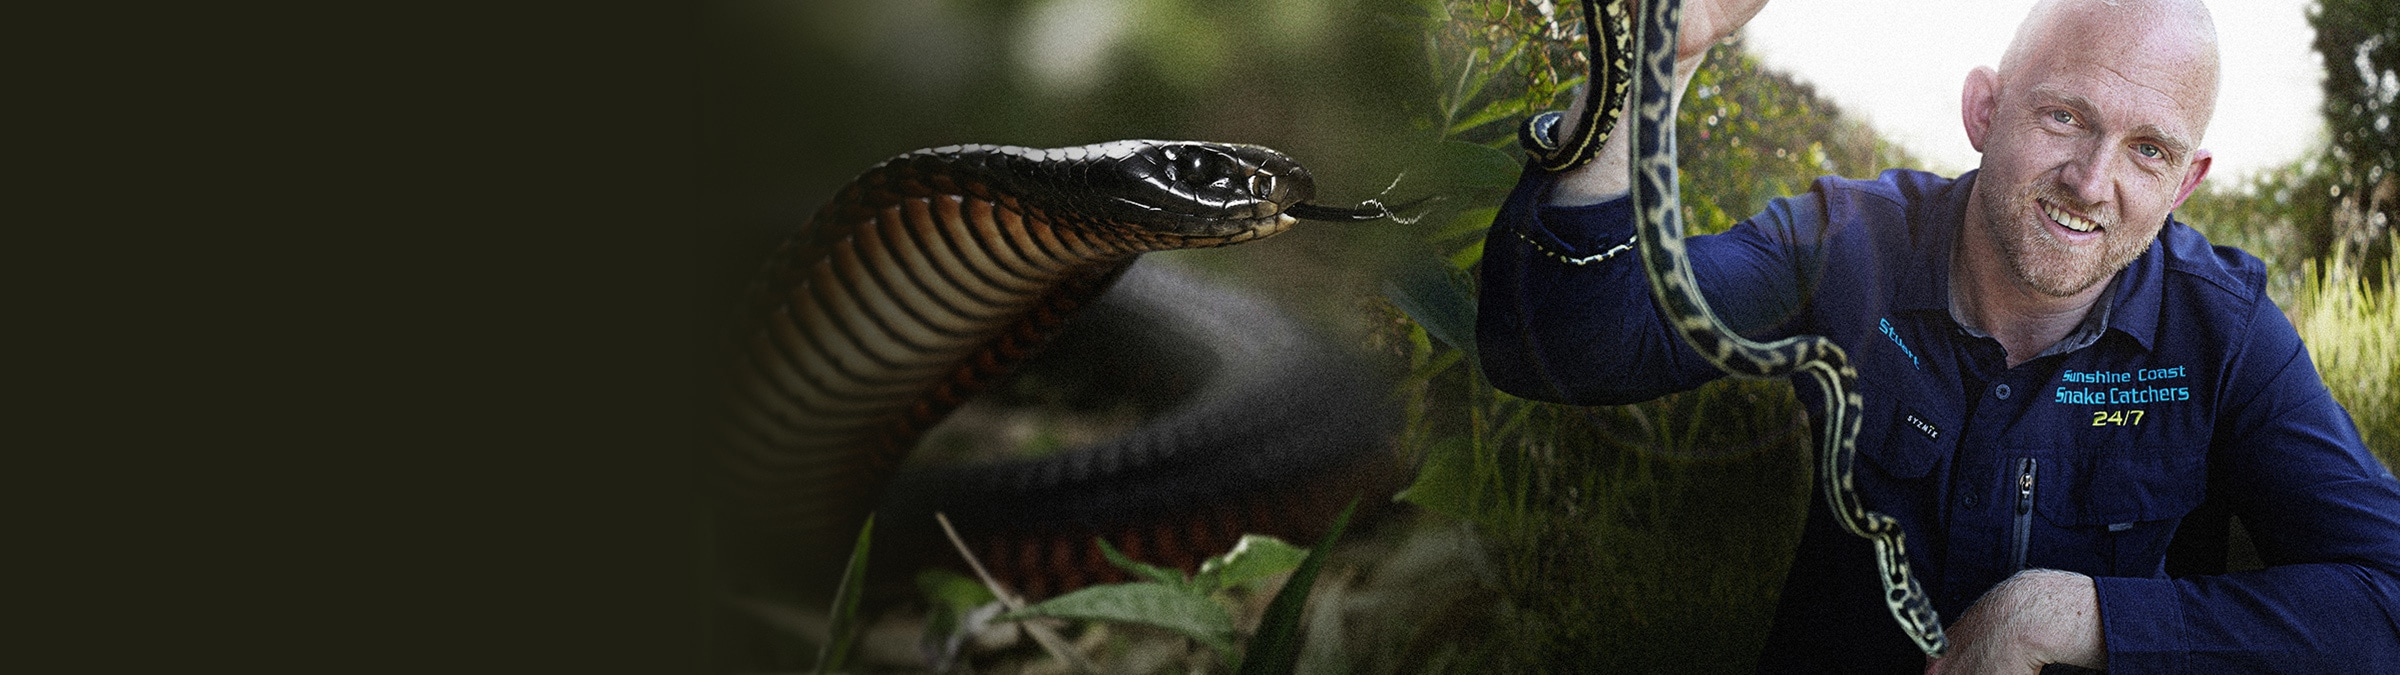 Aussie Snake Wranglers | National Geographic | Premiering 14 September